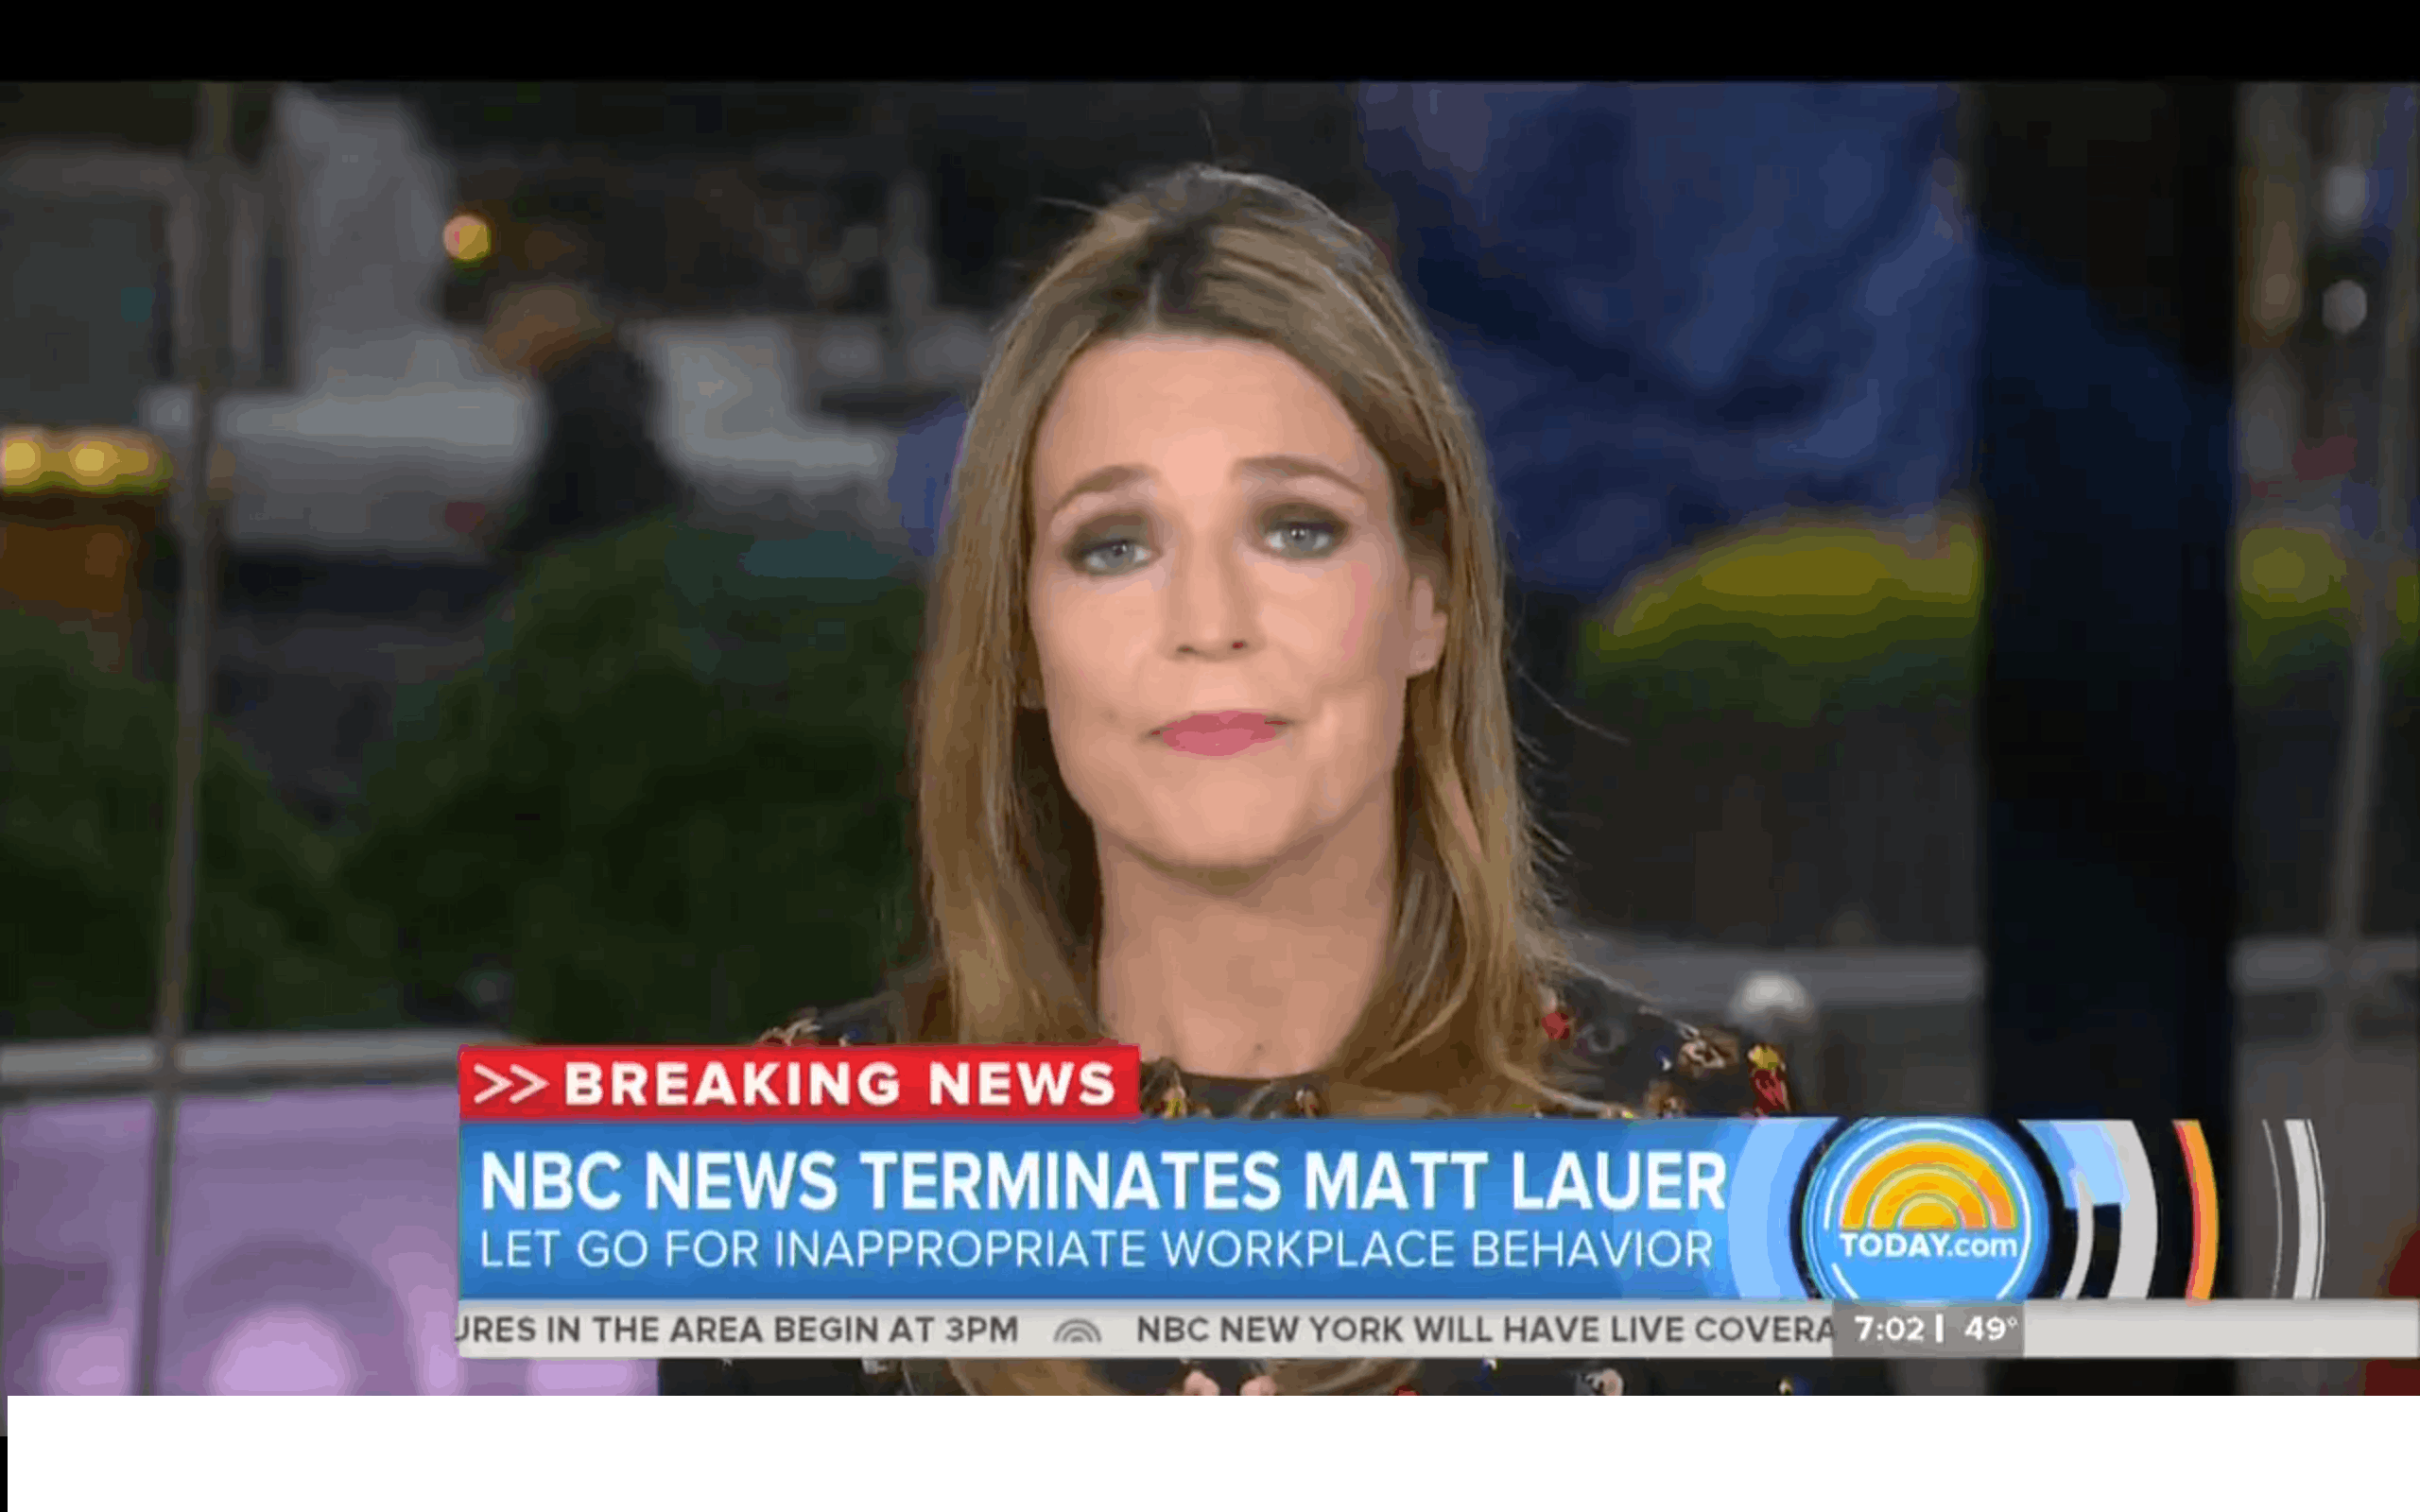 NBC News fires 'Today' anchor Matt Lauer after sexual misconduct review